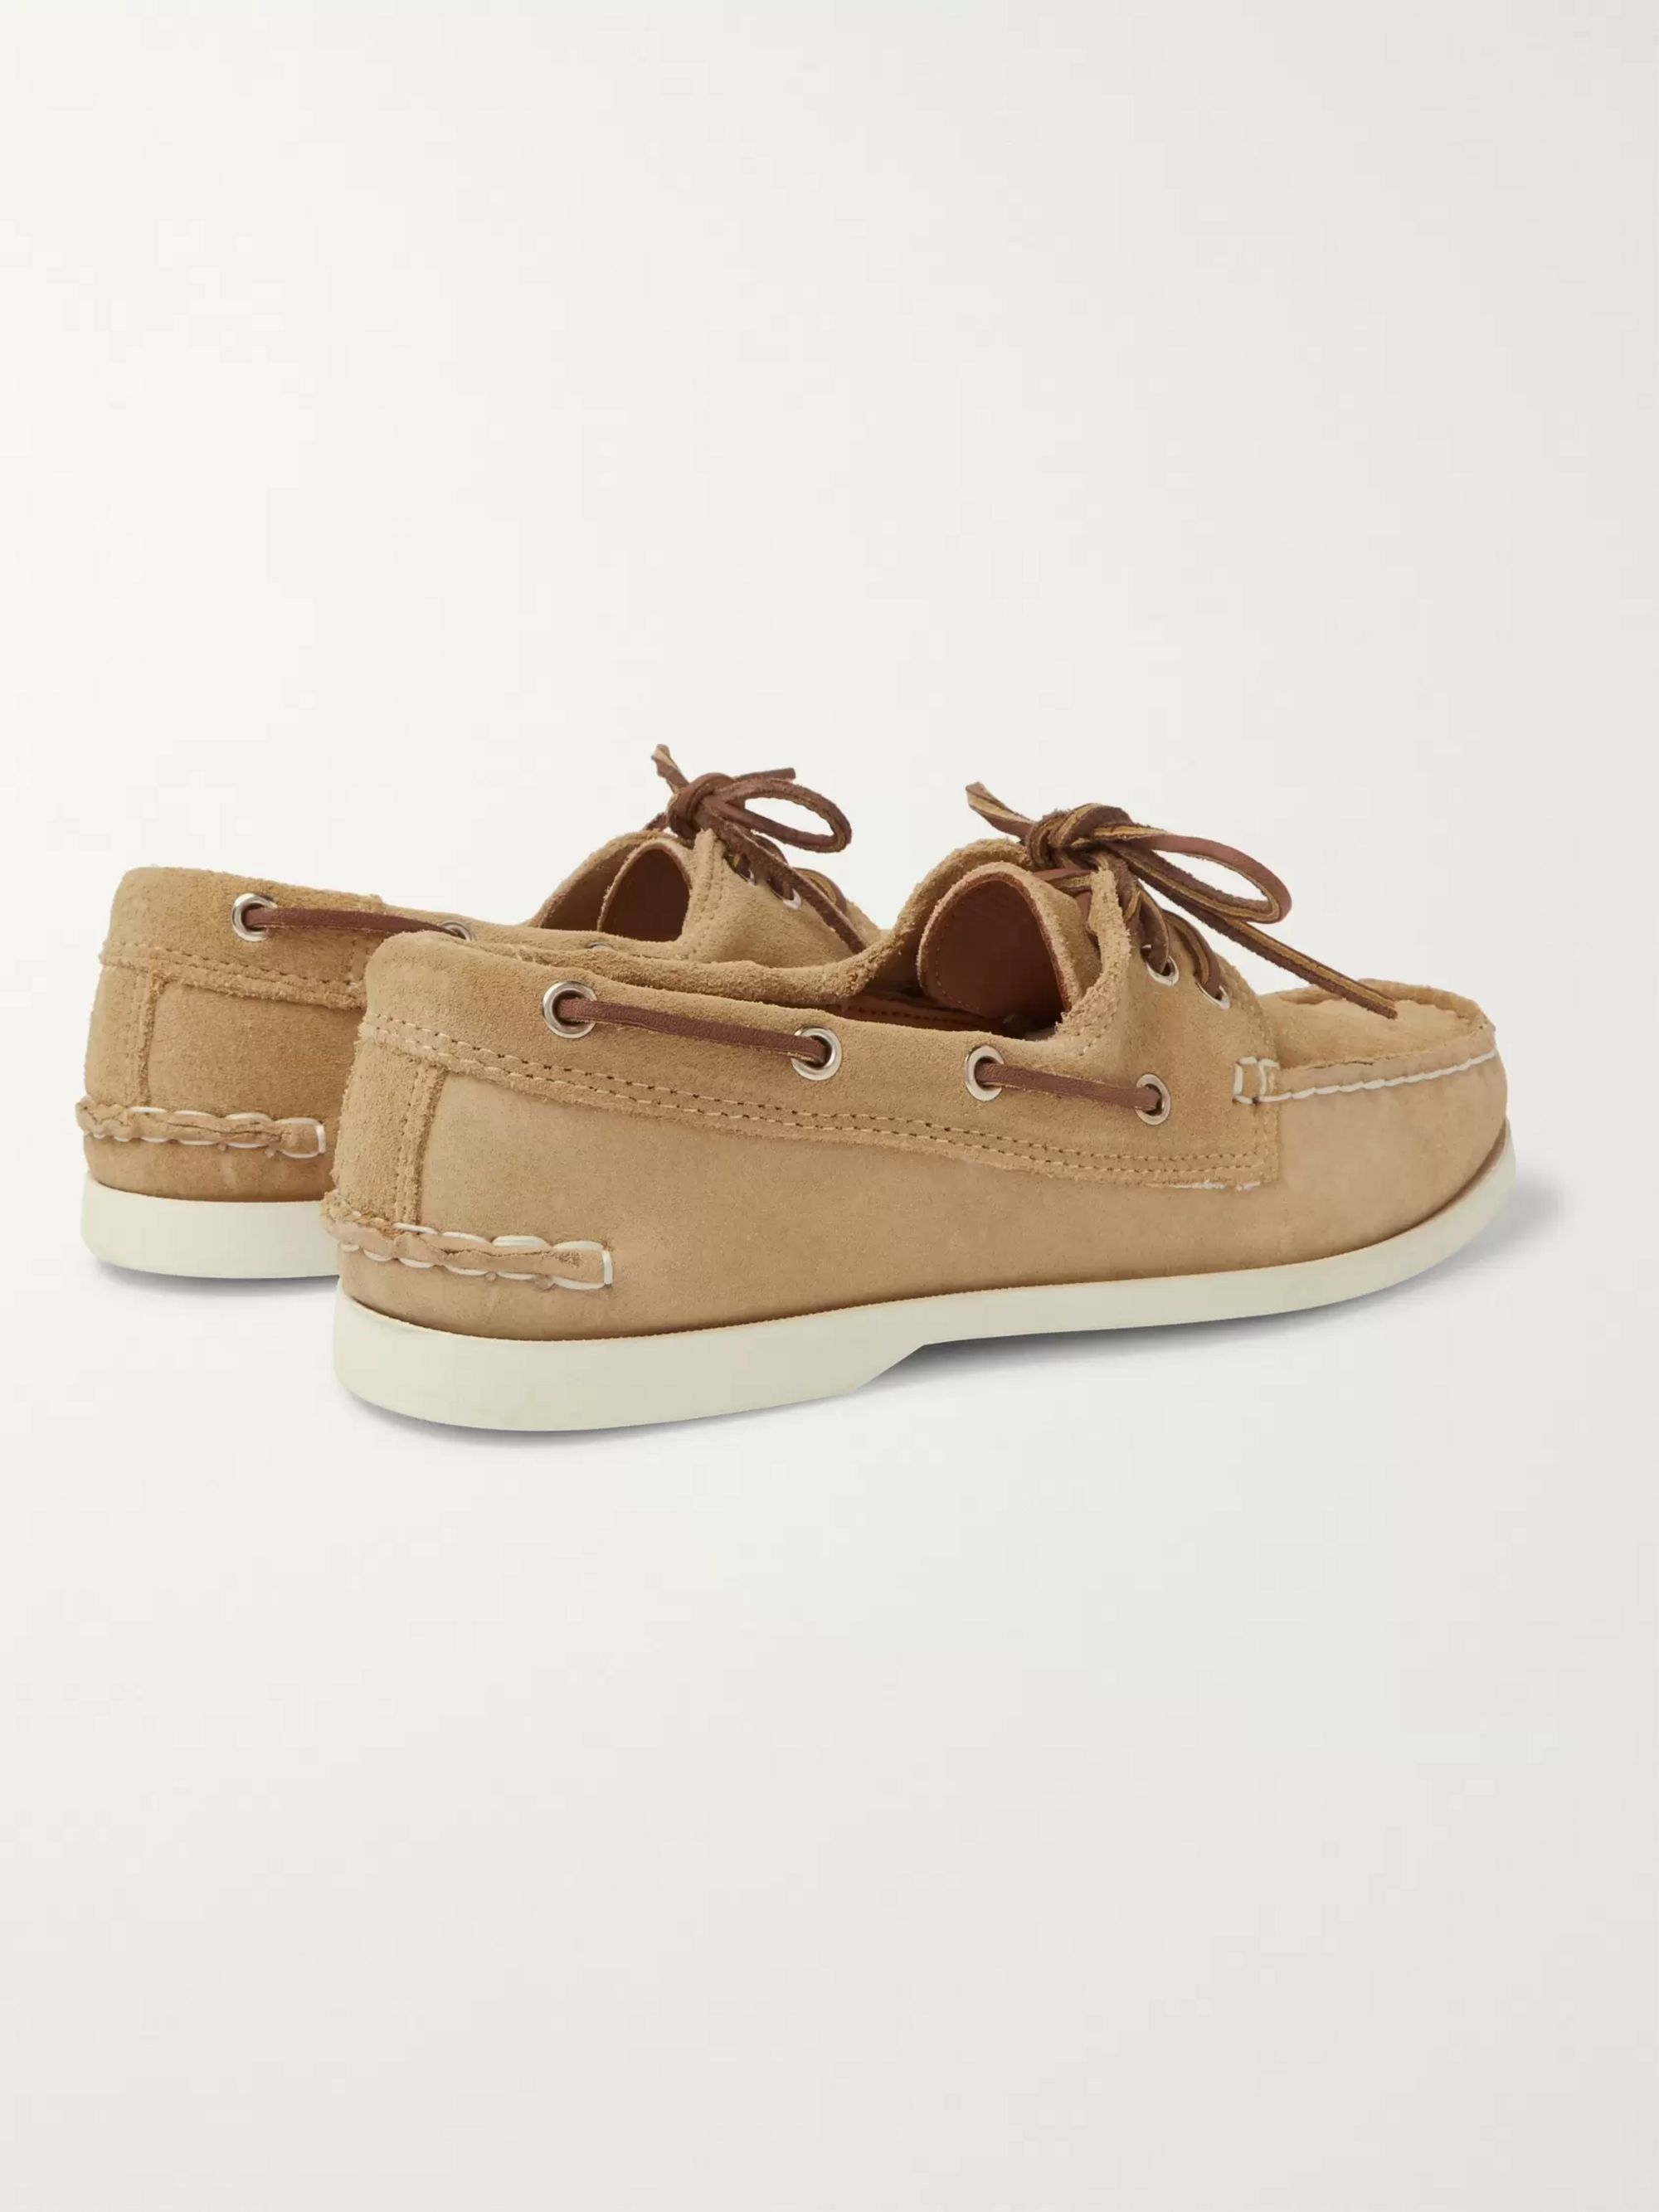 Quoddy Downeast Suede Boat Shoes